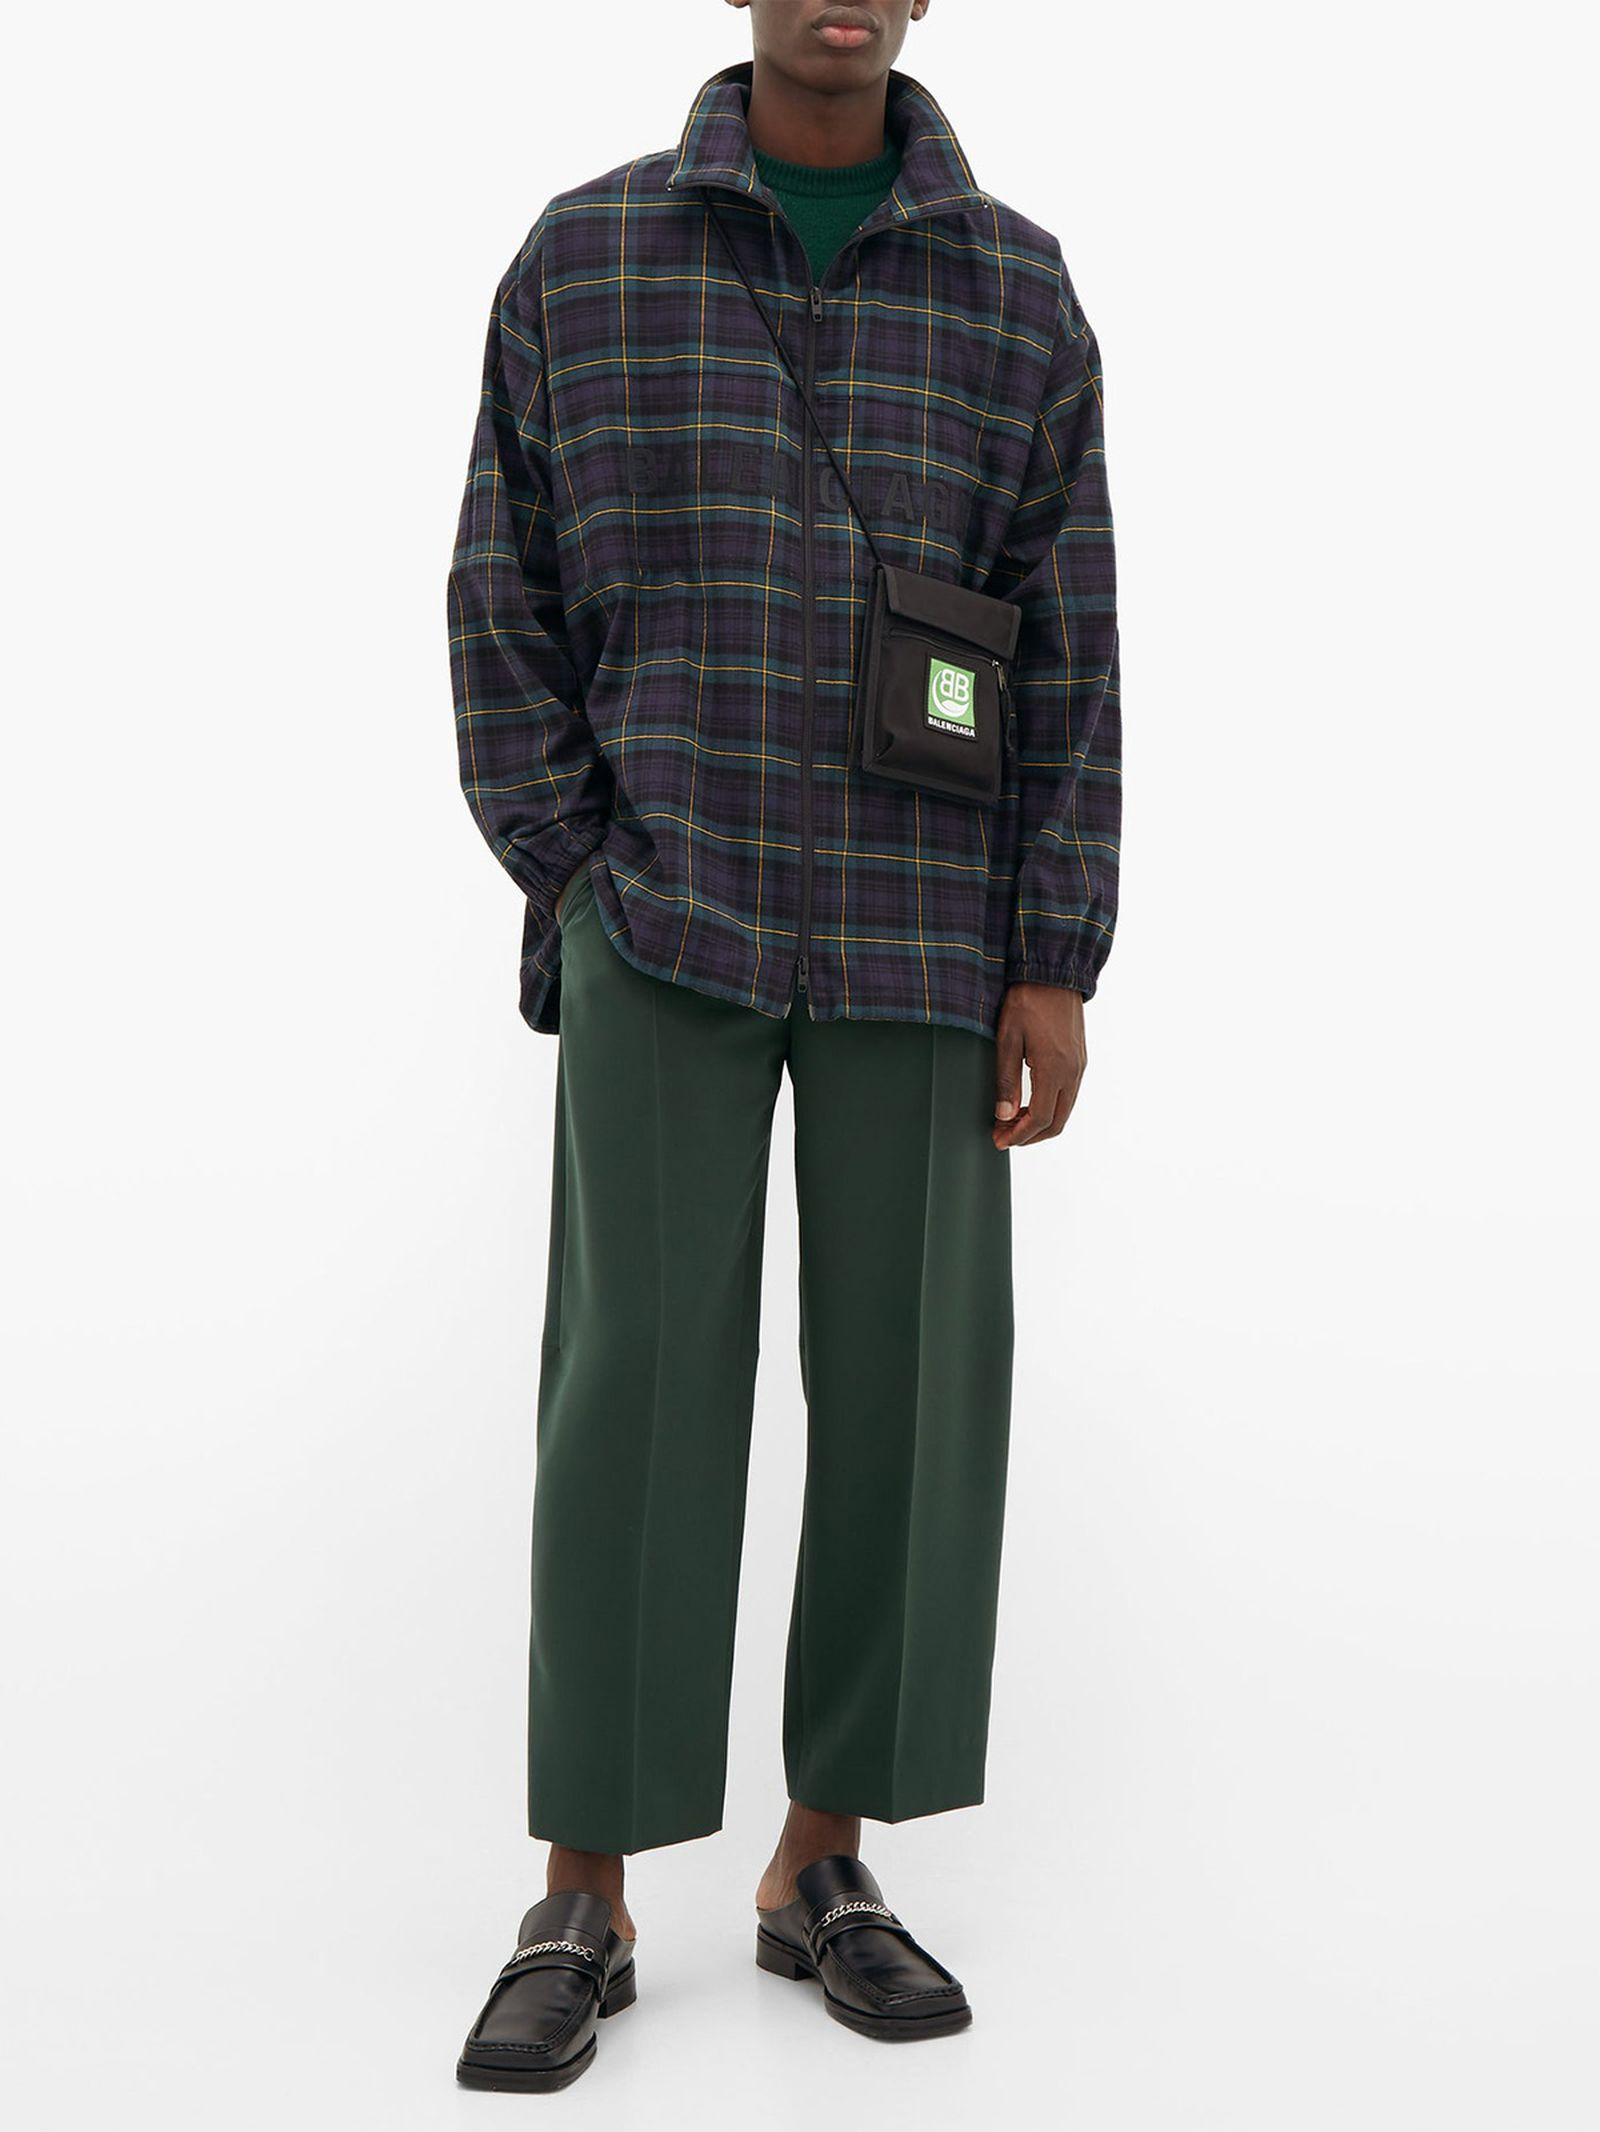 matchesfashion-best-formal-trousers-for-men-main